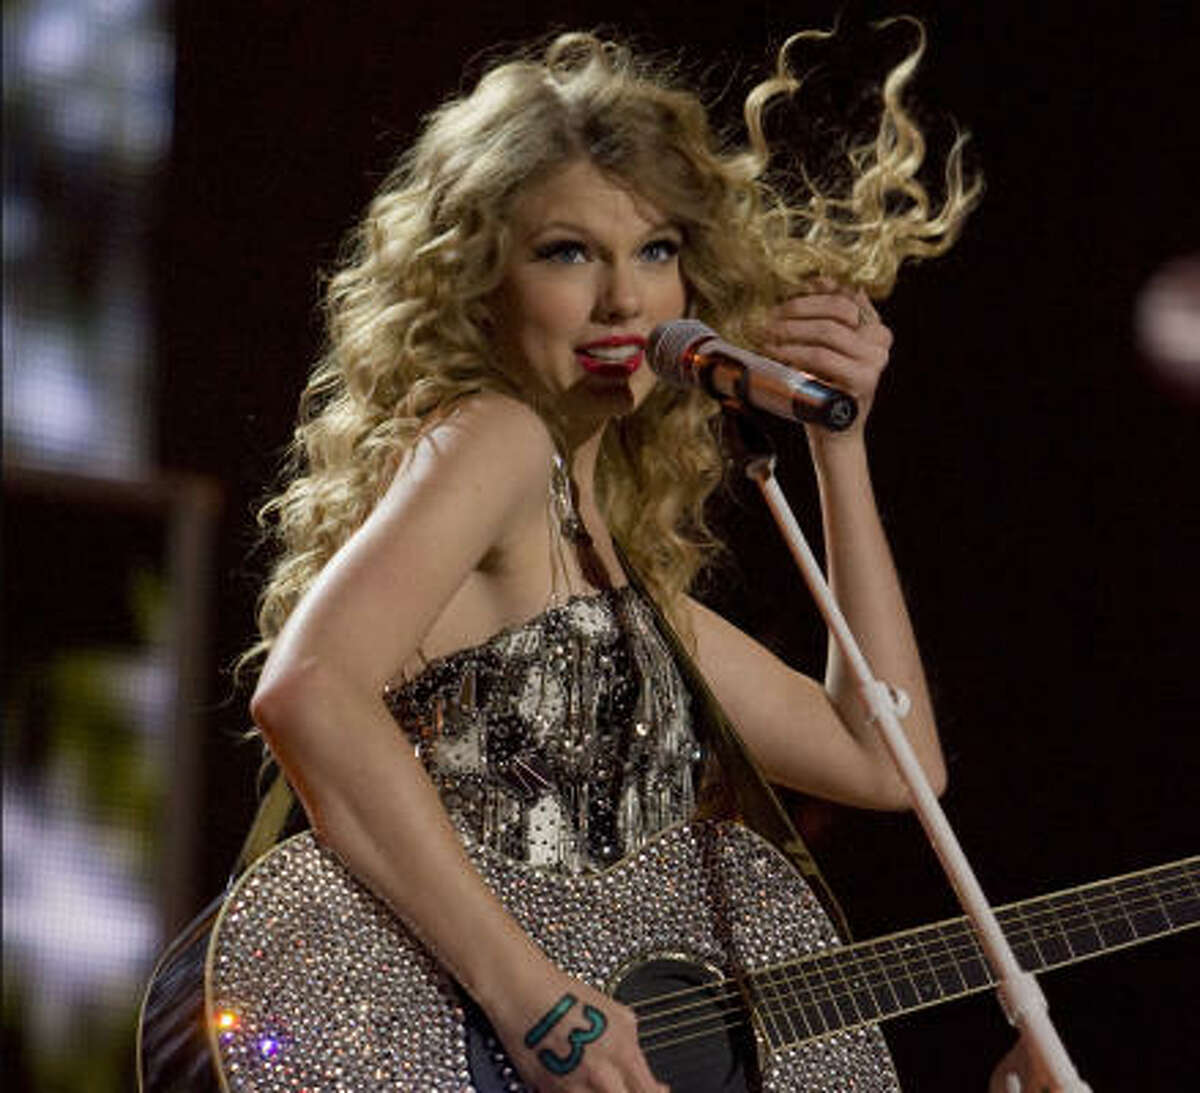 Taylor Swift performs during her Fearless Tour concert at Toyota Center in Houston, Texas. Click here for Joey Guerra's review: